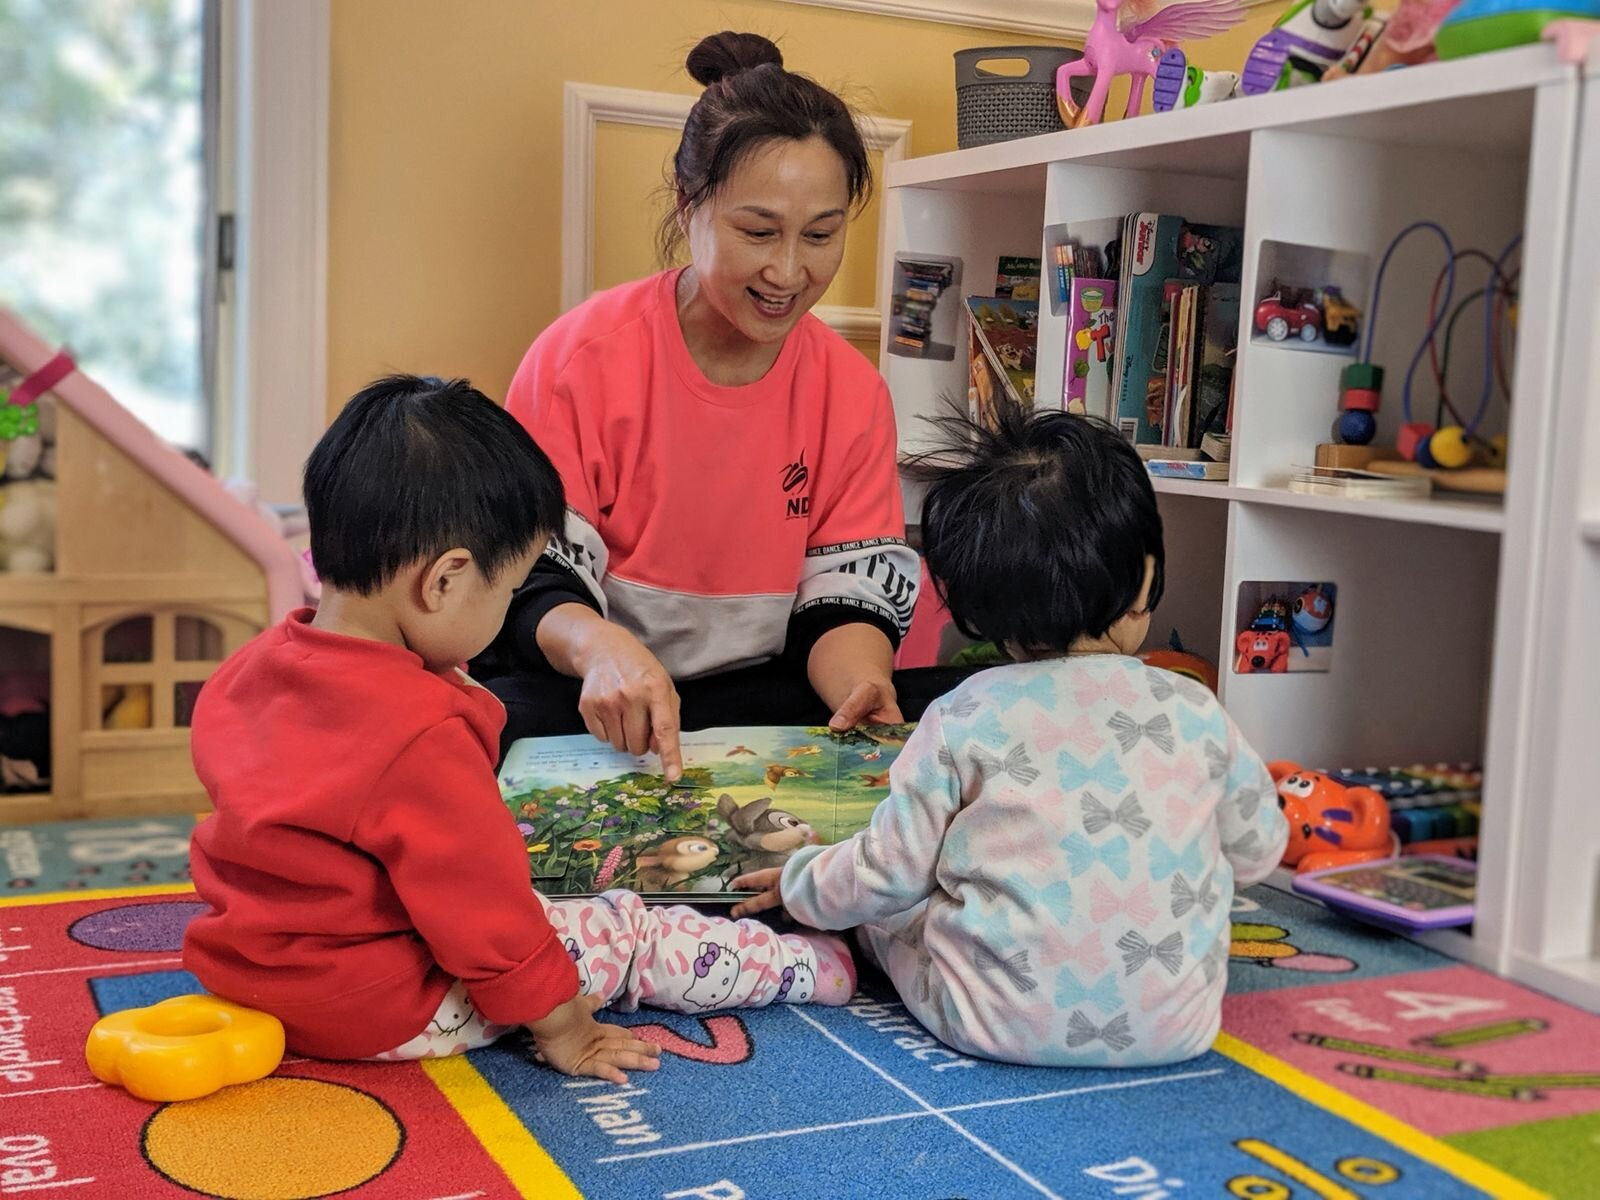 BeiBei Cub Daycare in Newton MA provides a loving environment for children - enrolling now!